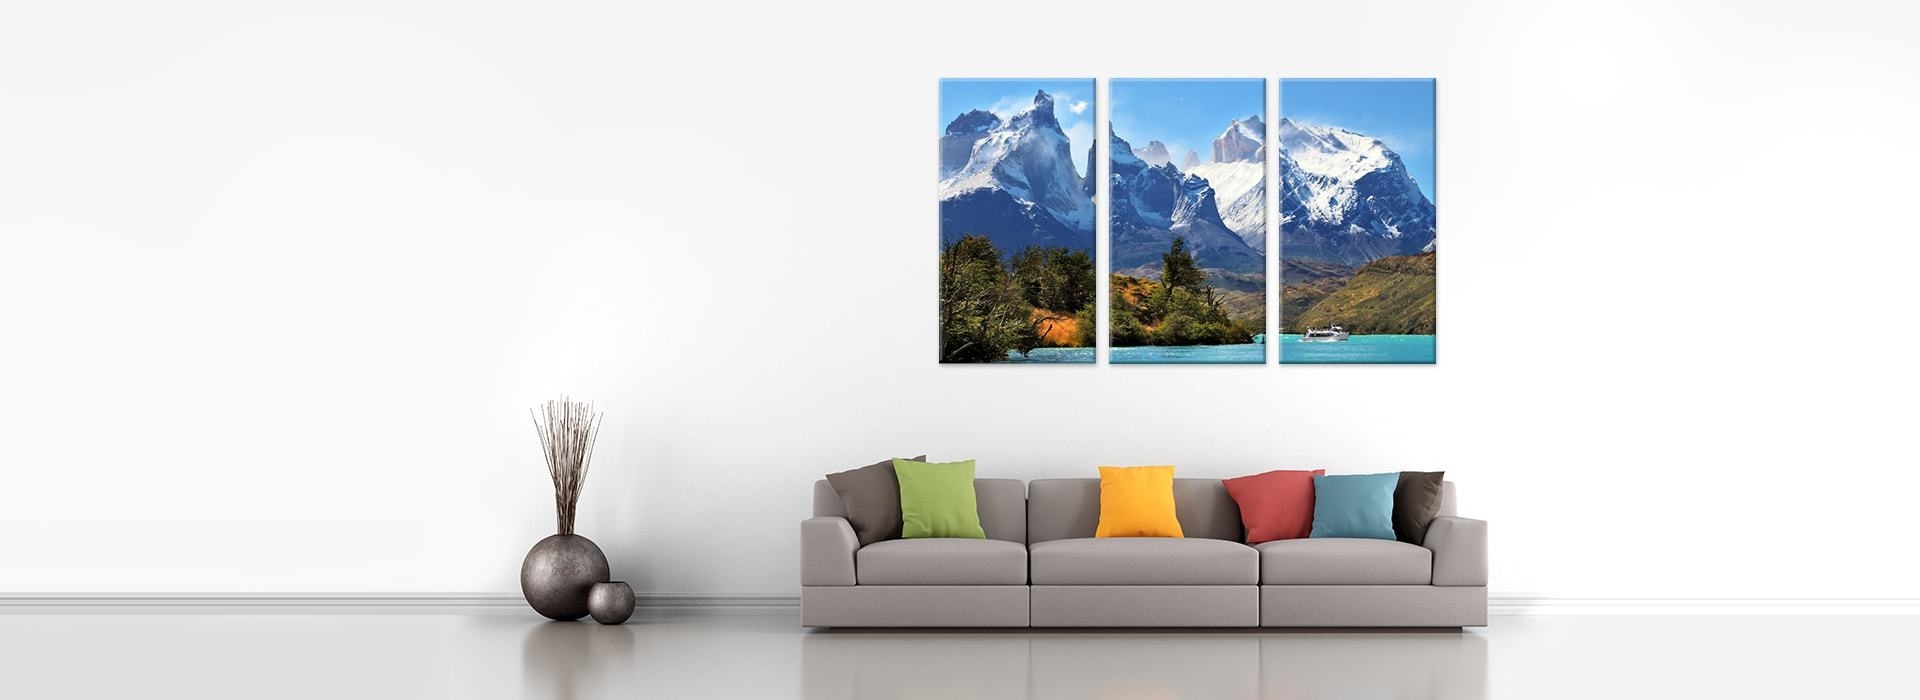 Canvas Prints | Canvas Factory With Most Recent Canvas Wall Art Of Philippines (Gallery 4 of 15)